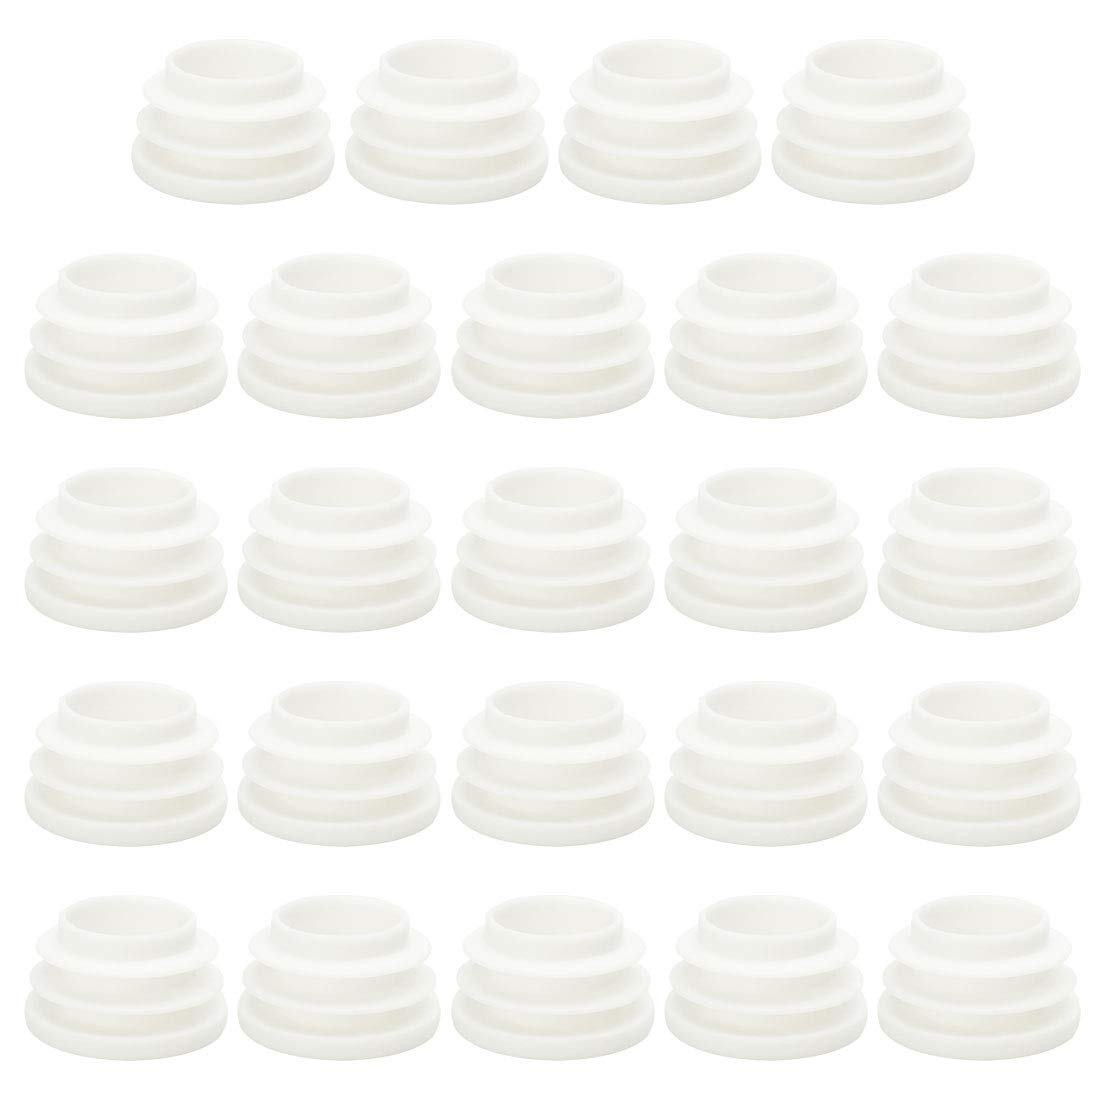 uxcell 1' 25mm OD Plastic Round Ribbed Tube Insert Pipe End Cover Cap White 24pcs, 0.87'-0.94' Inner Dia, Furniture Chair Table Feet Floor Protector